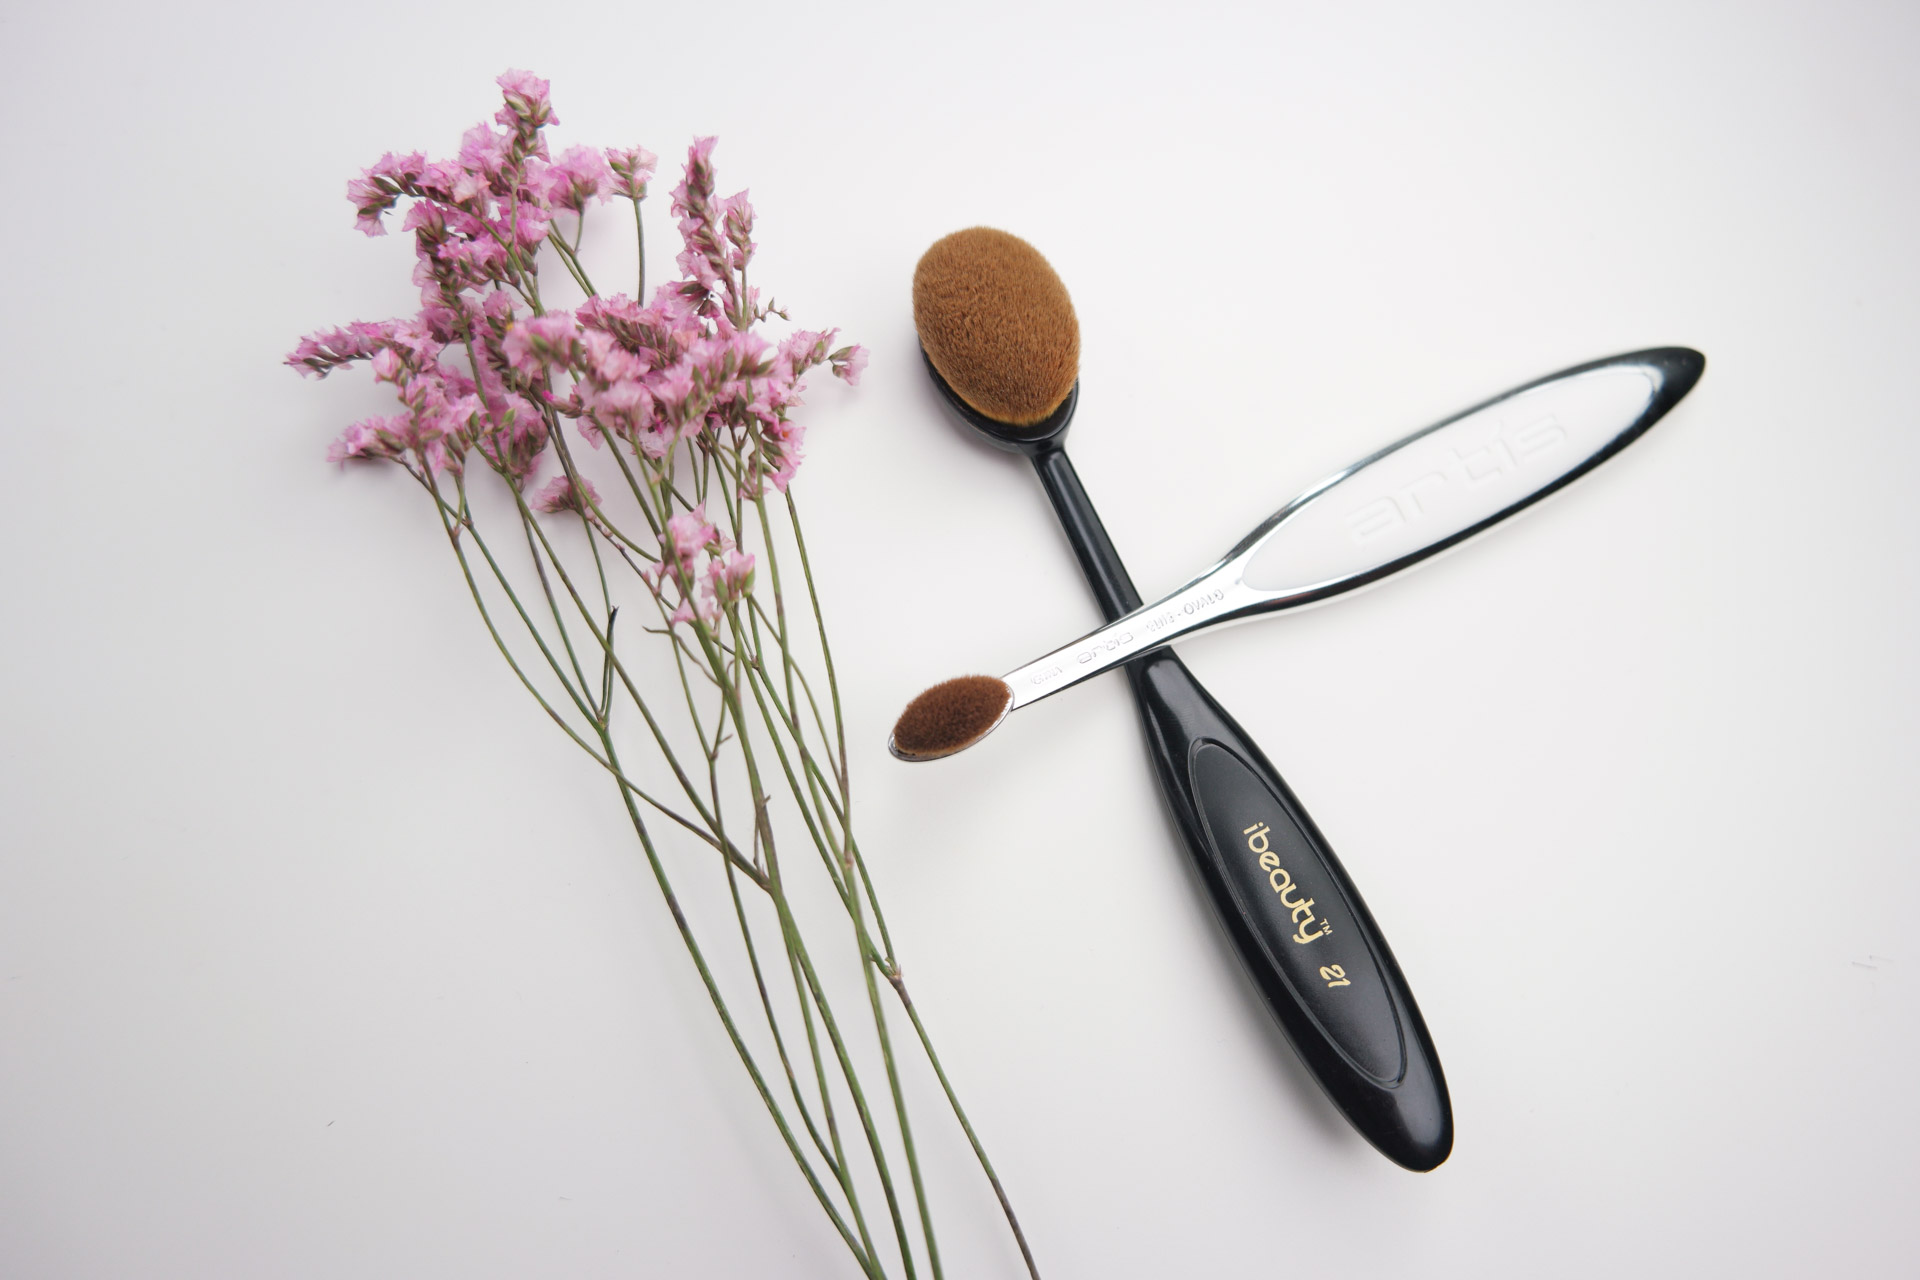 brushes compared: Artis Oval 3 vs iBeauty #21